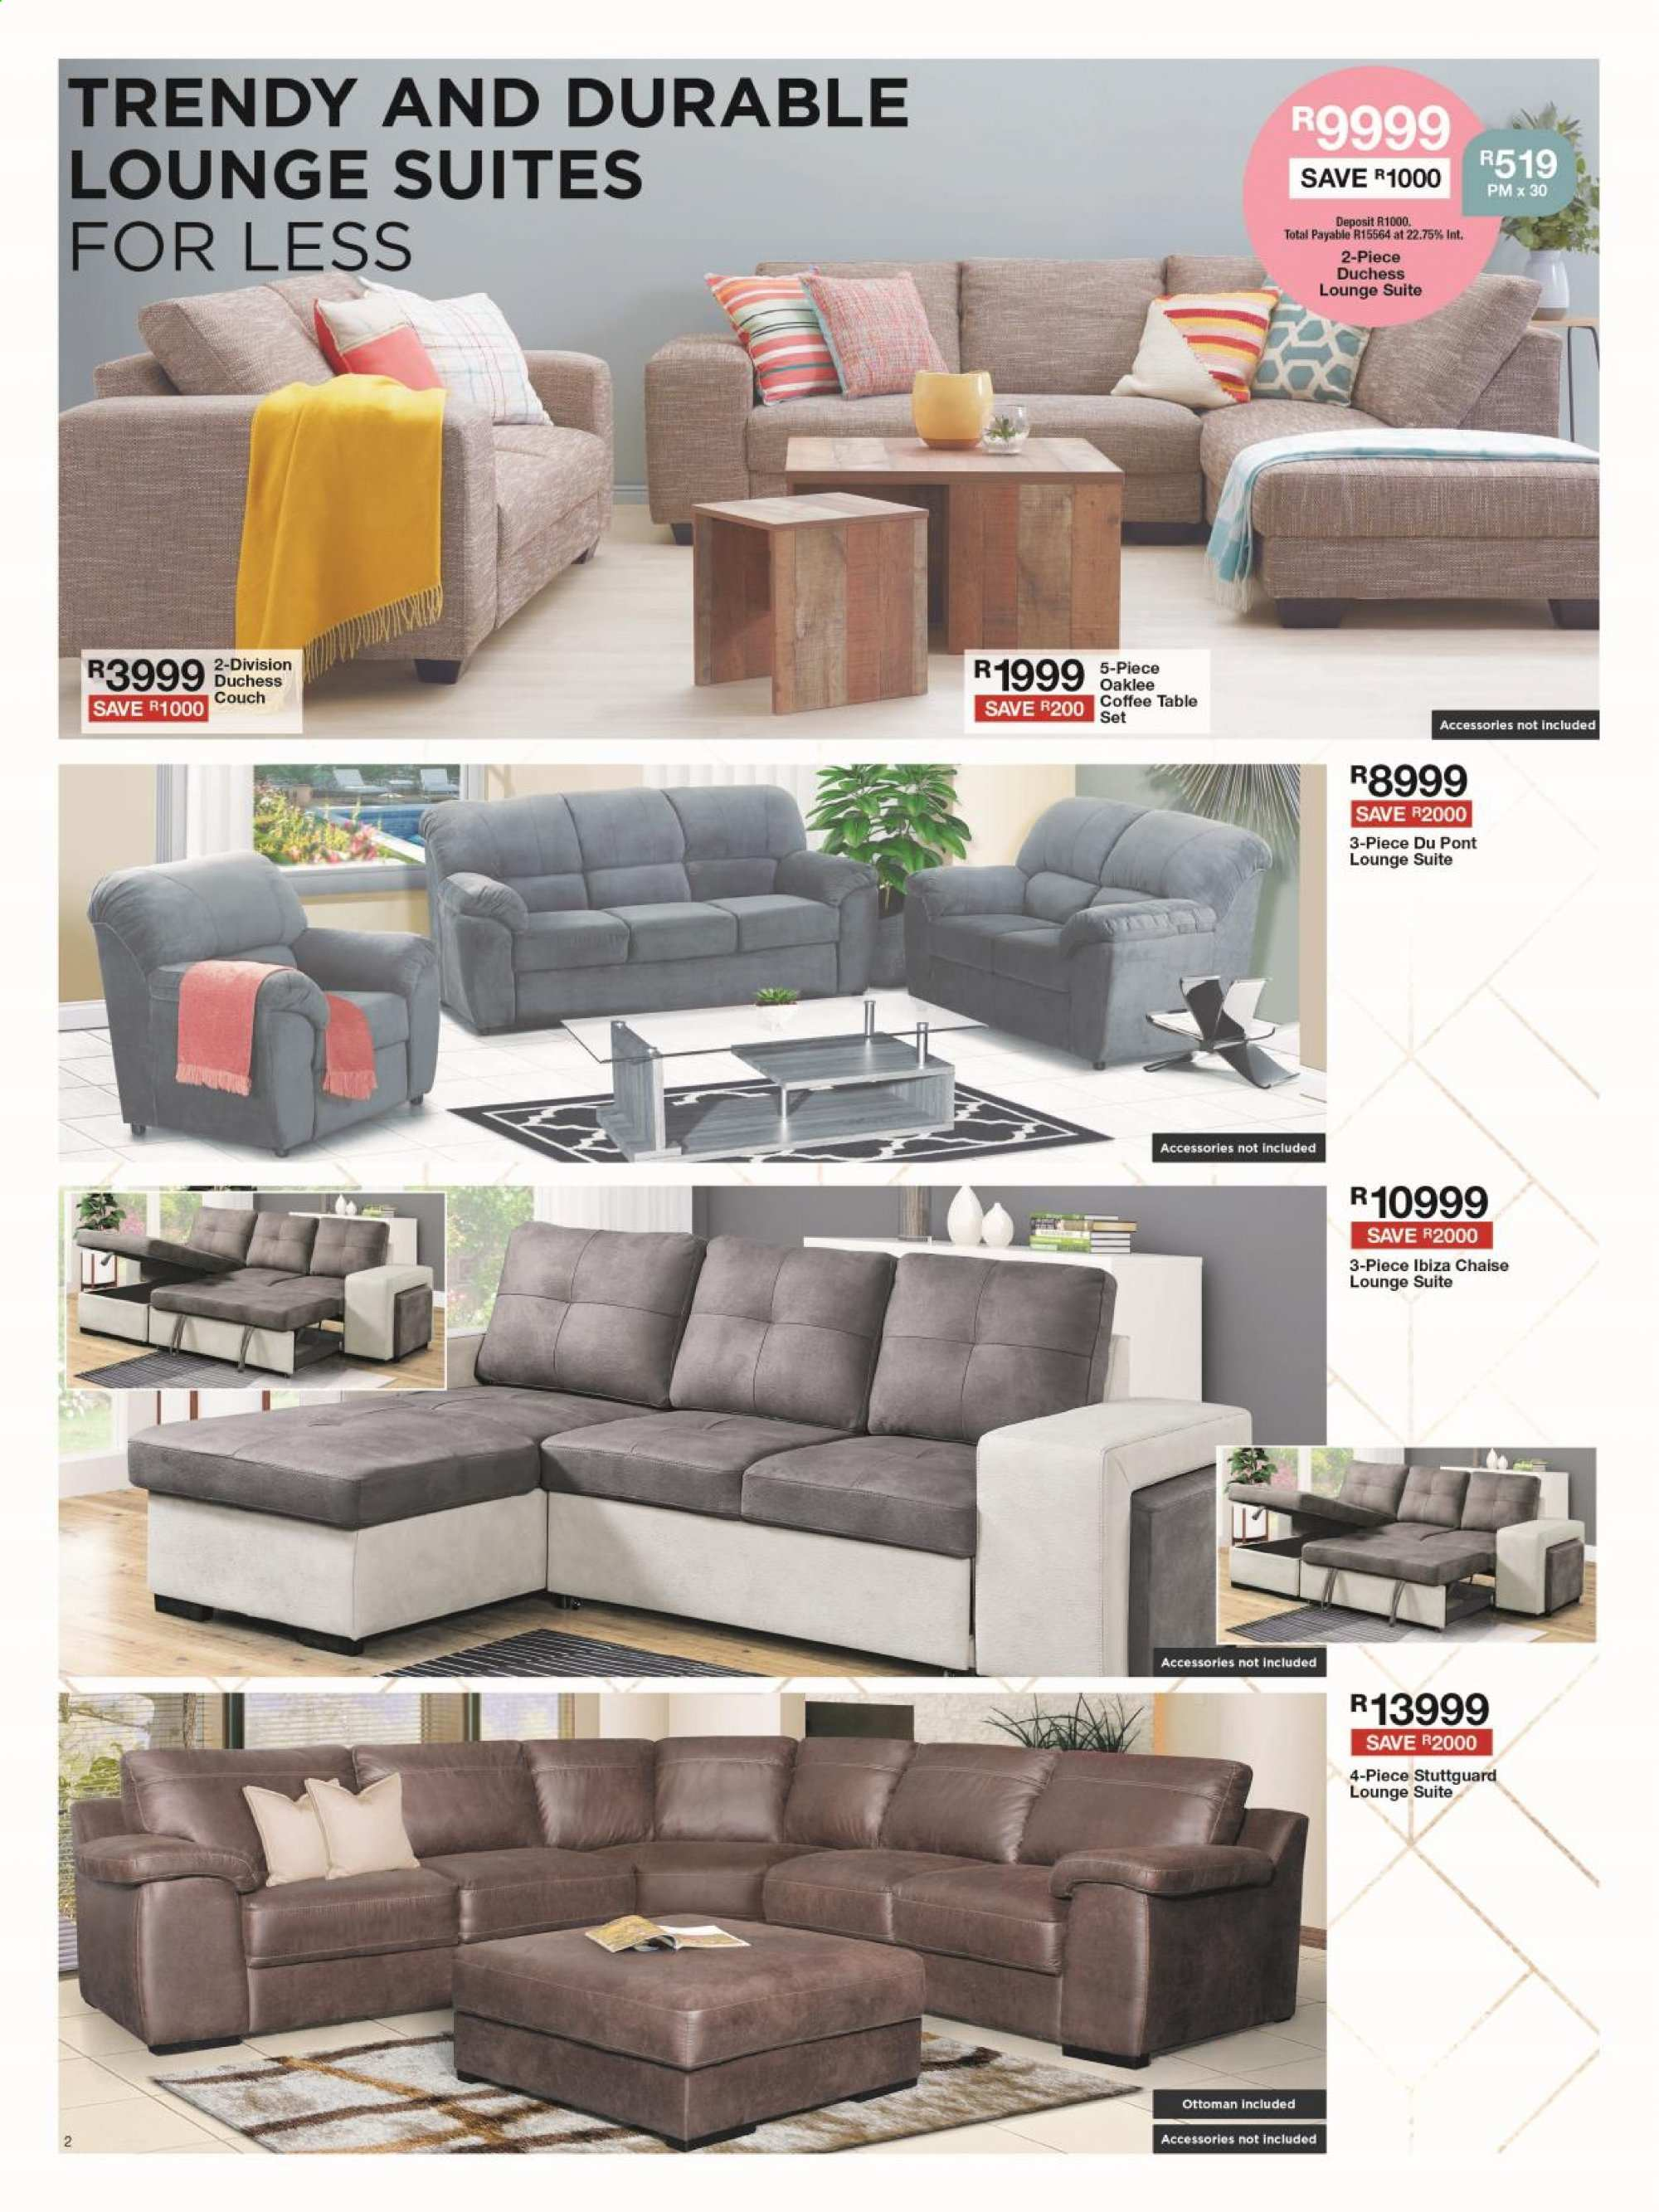 House & Home catalogue  - 07.23.2019 - 08.04.2019. Page 2.